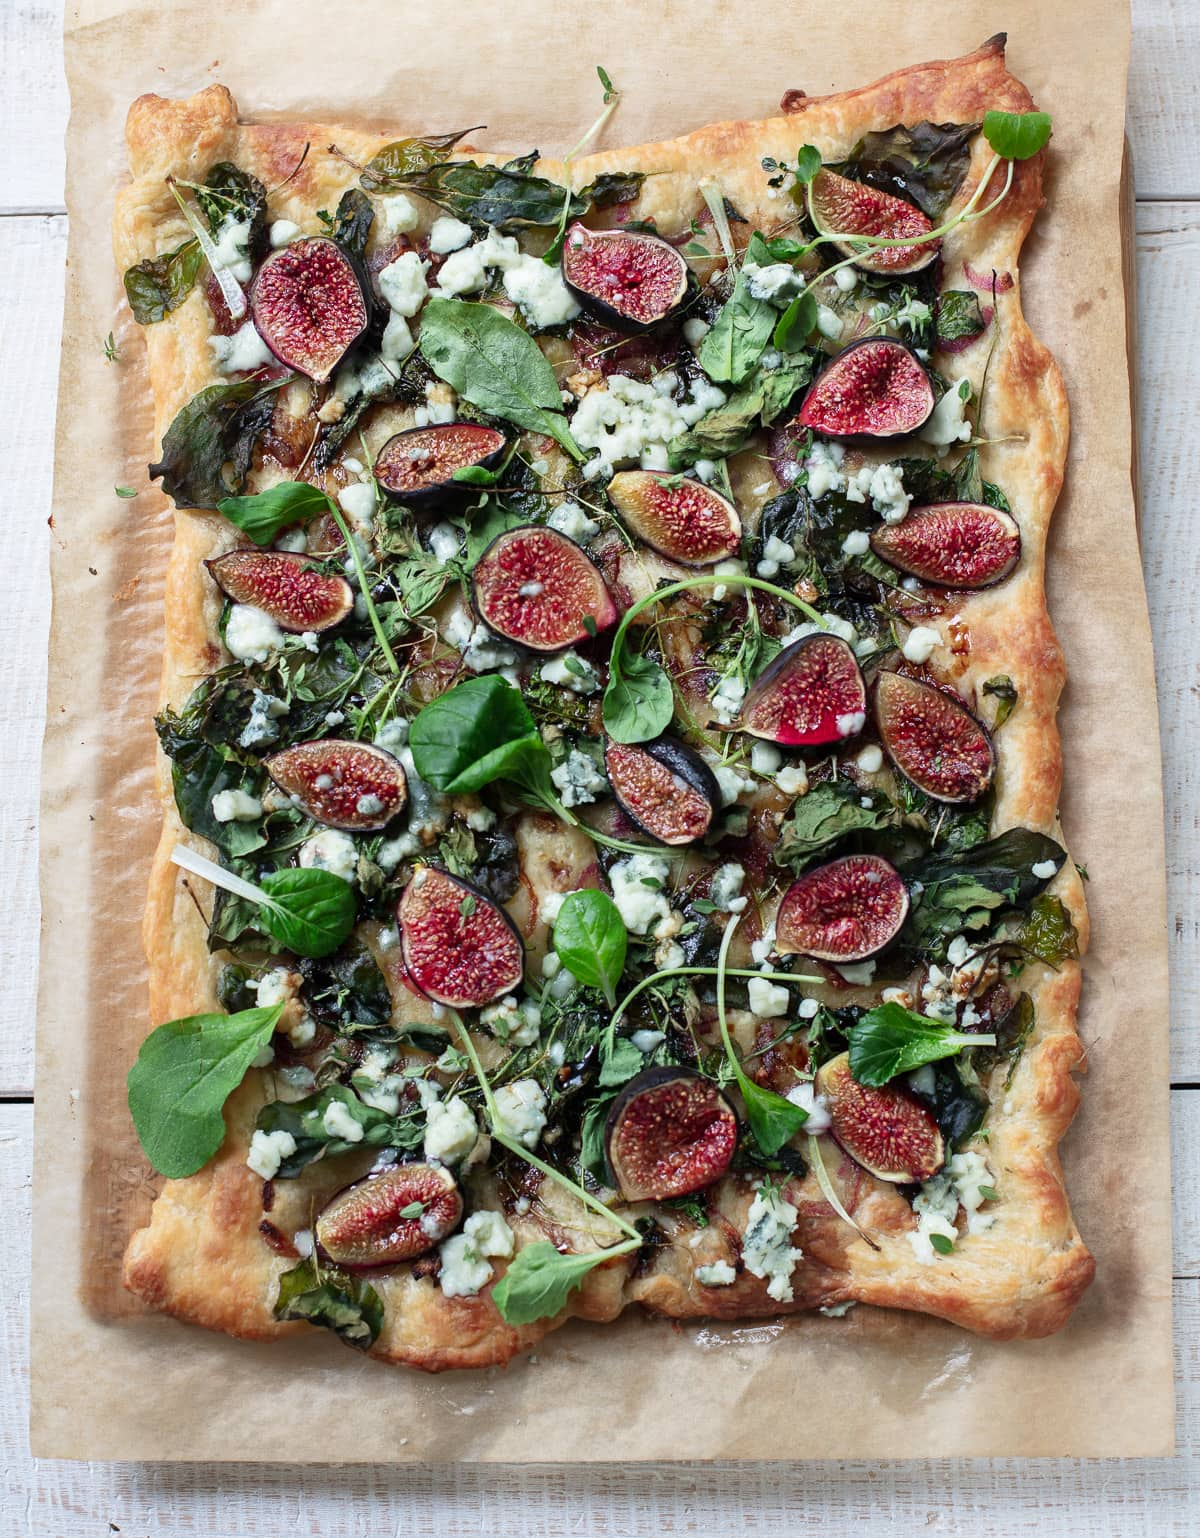 Slices of puff pastry appetizer topped with wedges of fresh figs, blue cheese and arugula greens.